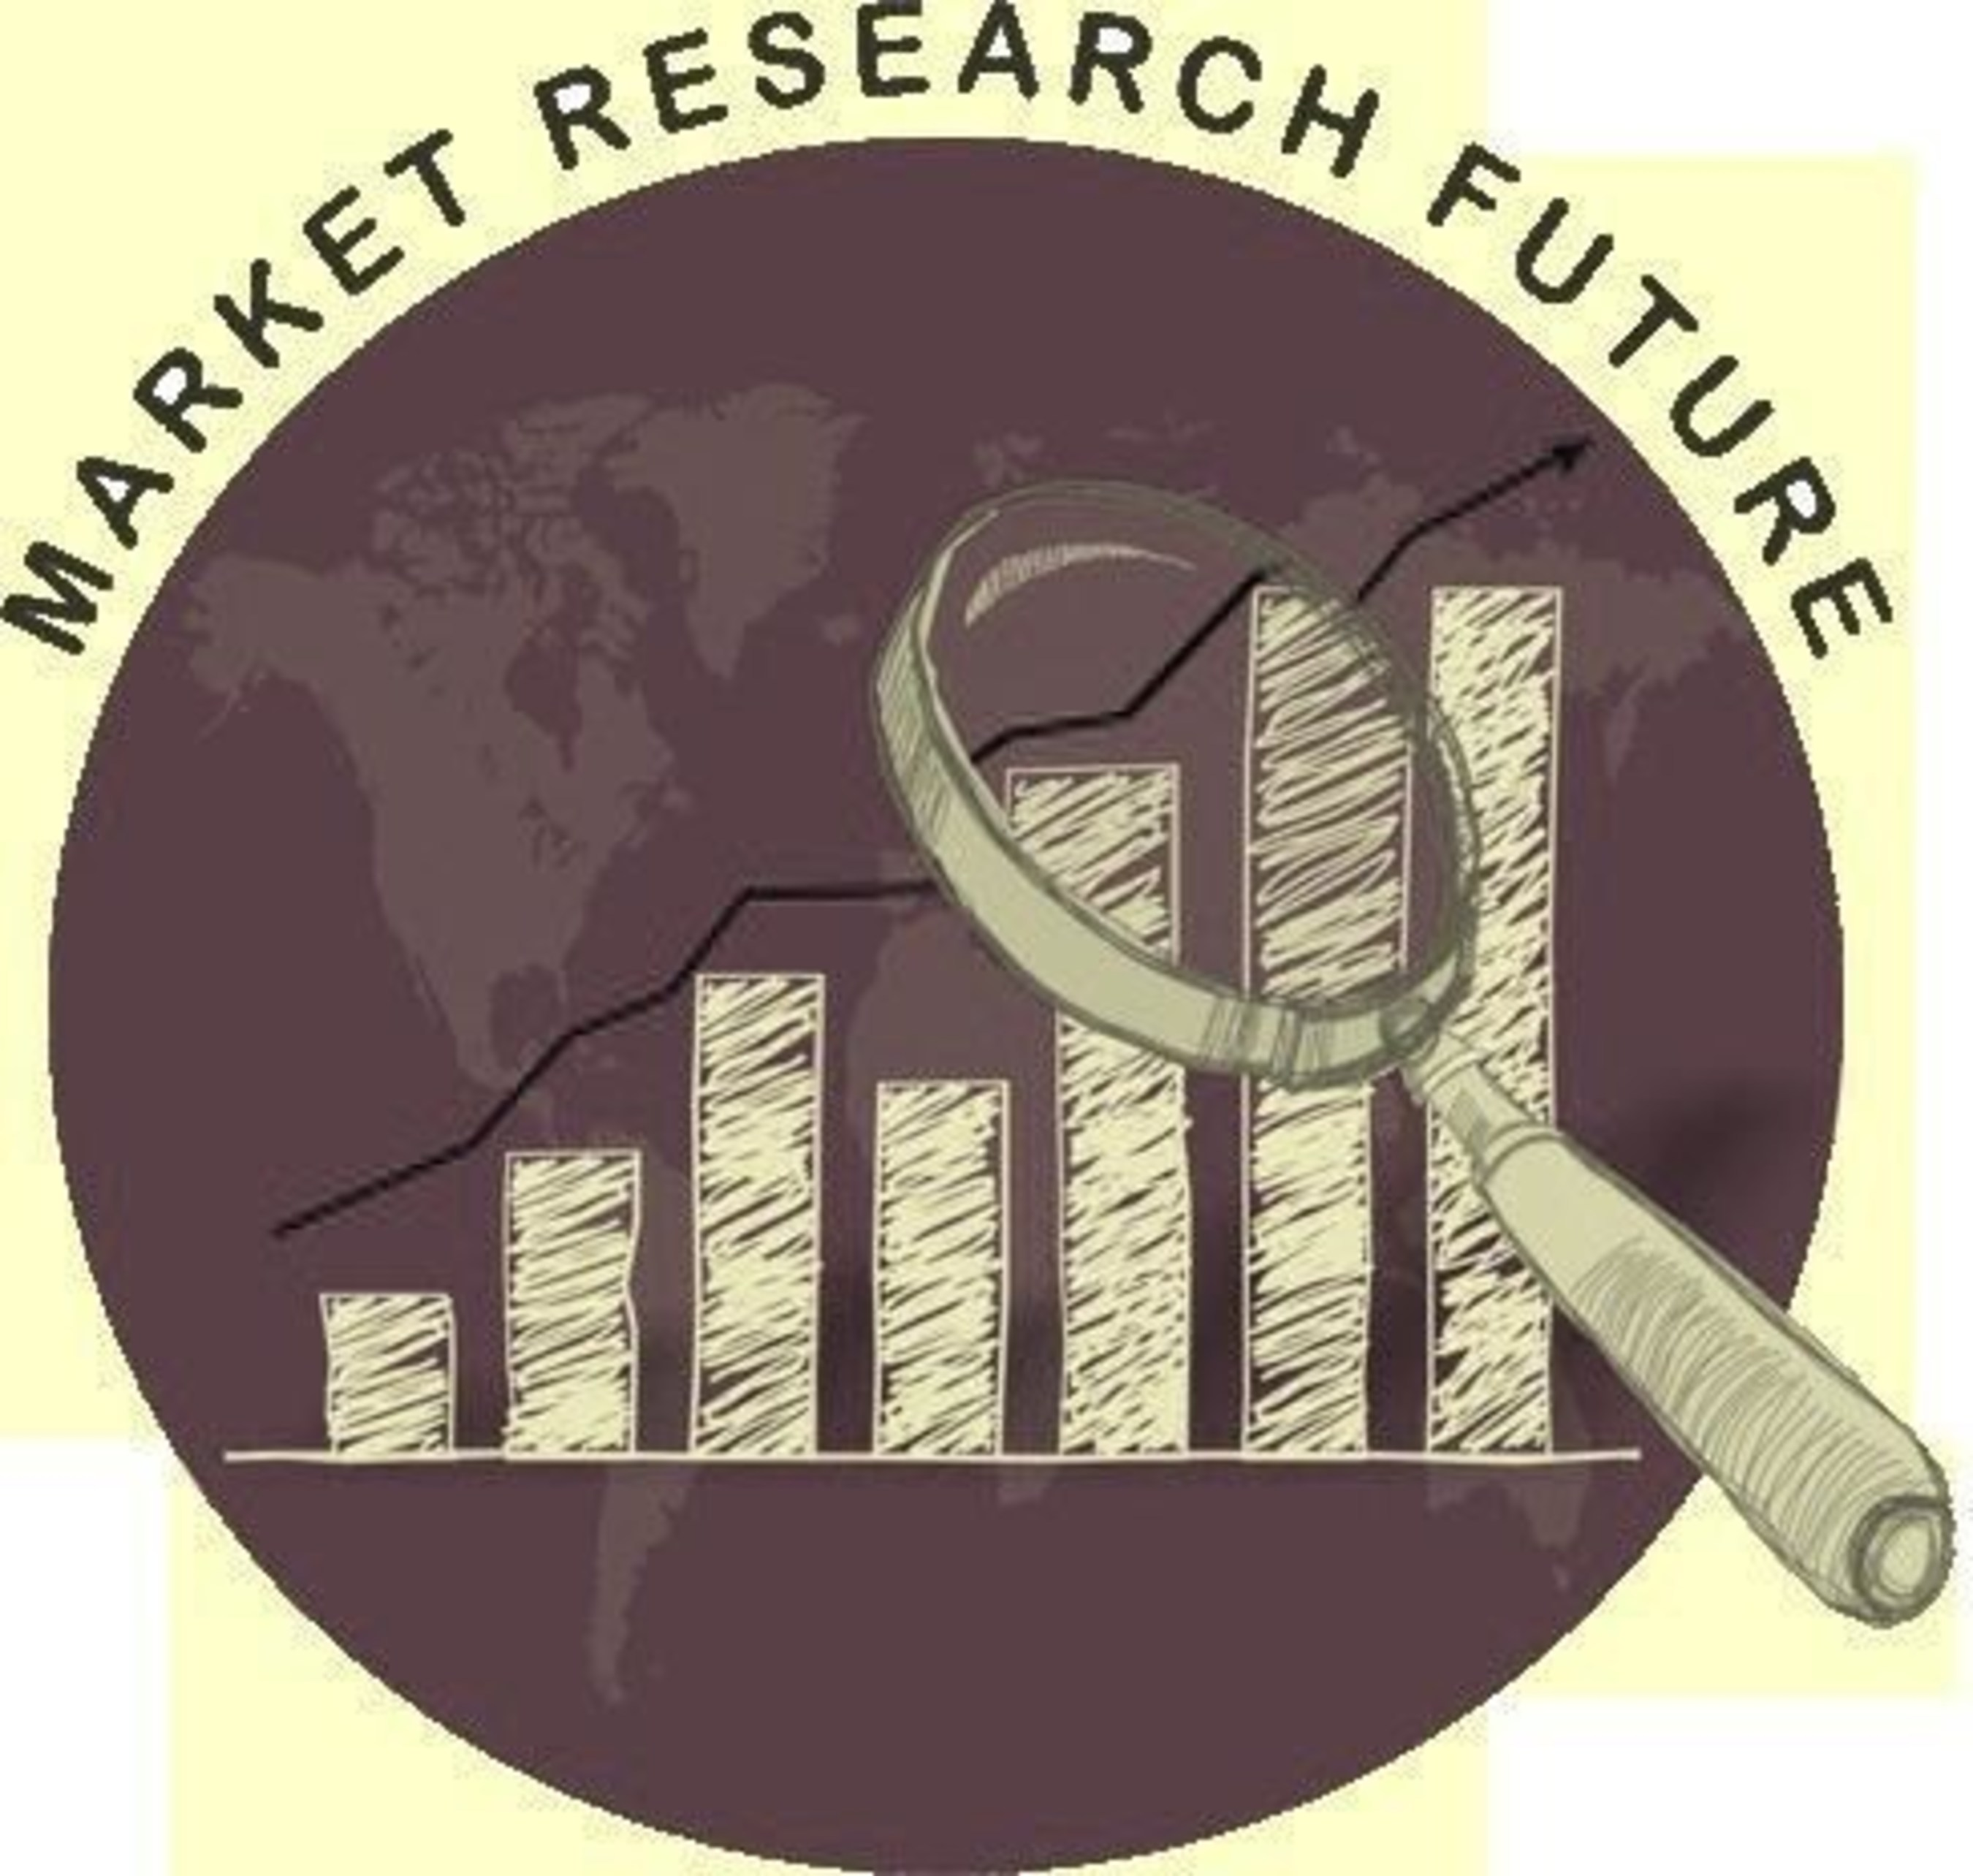 Expansion of Clinical Practice Management Software Market to forecast 2027